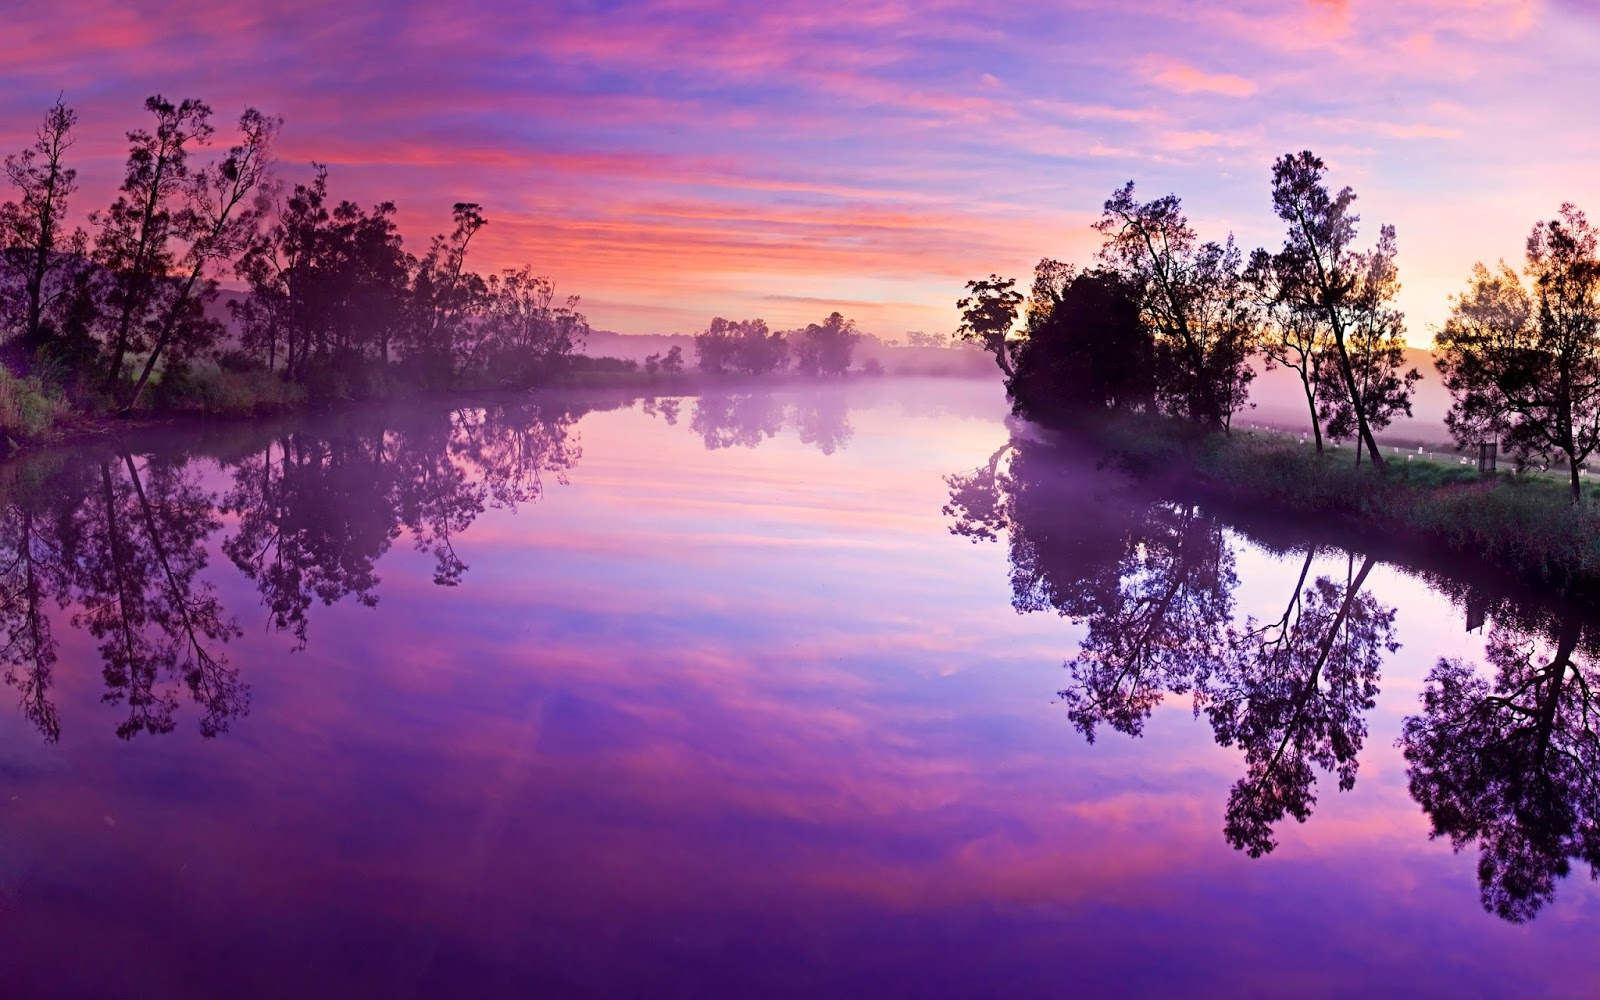 Tiptop 3d hd wallpapers collection breathtaking nature - Nature wallpaper 2560x1600 ...